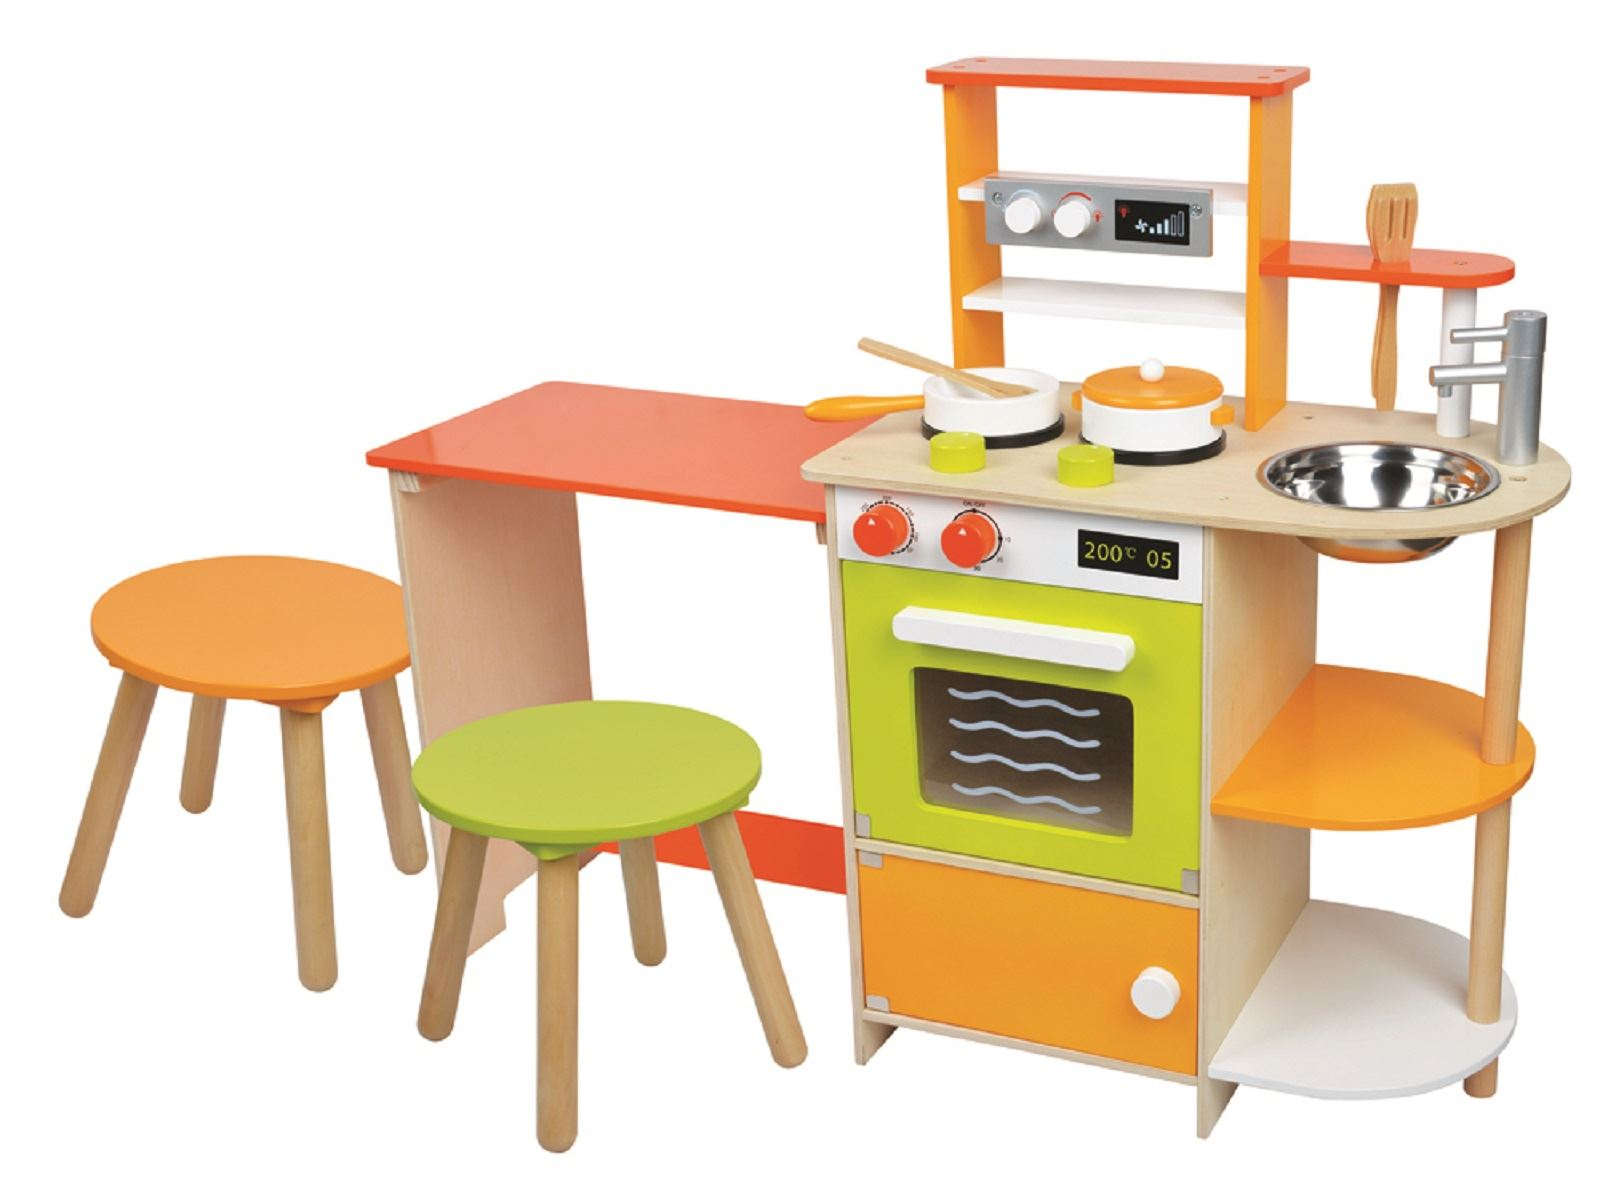 Childrens Wooden Kitchen Furniture Wooden Childrens Kitchen Set Kitchen Ideas Wooden Childrens